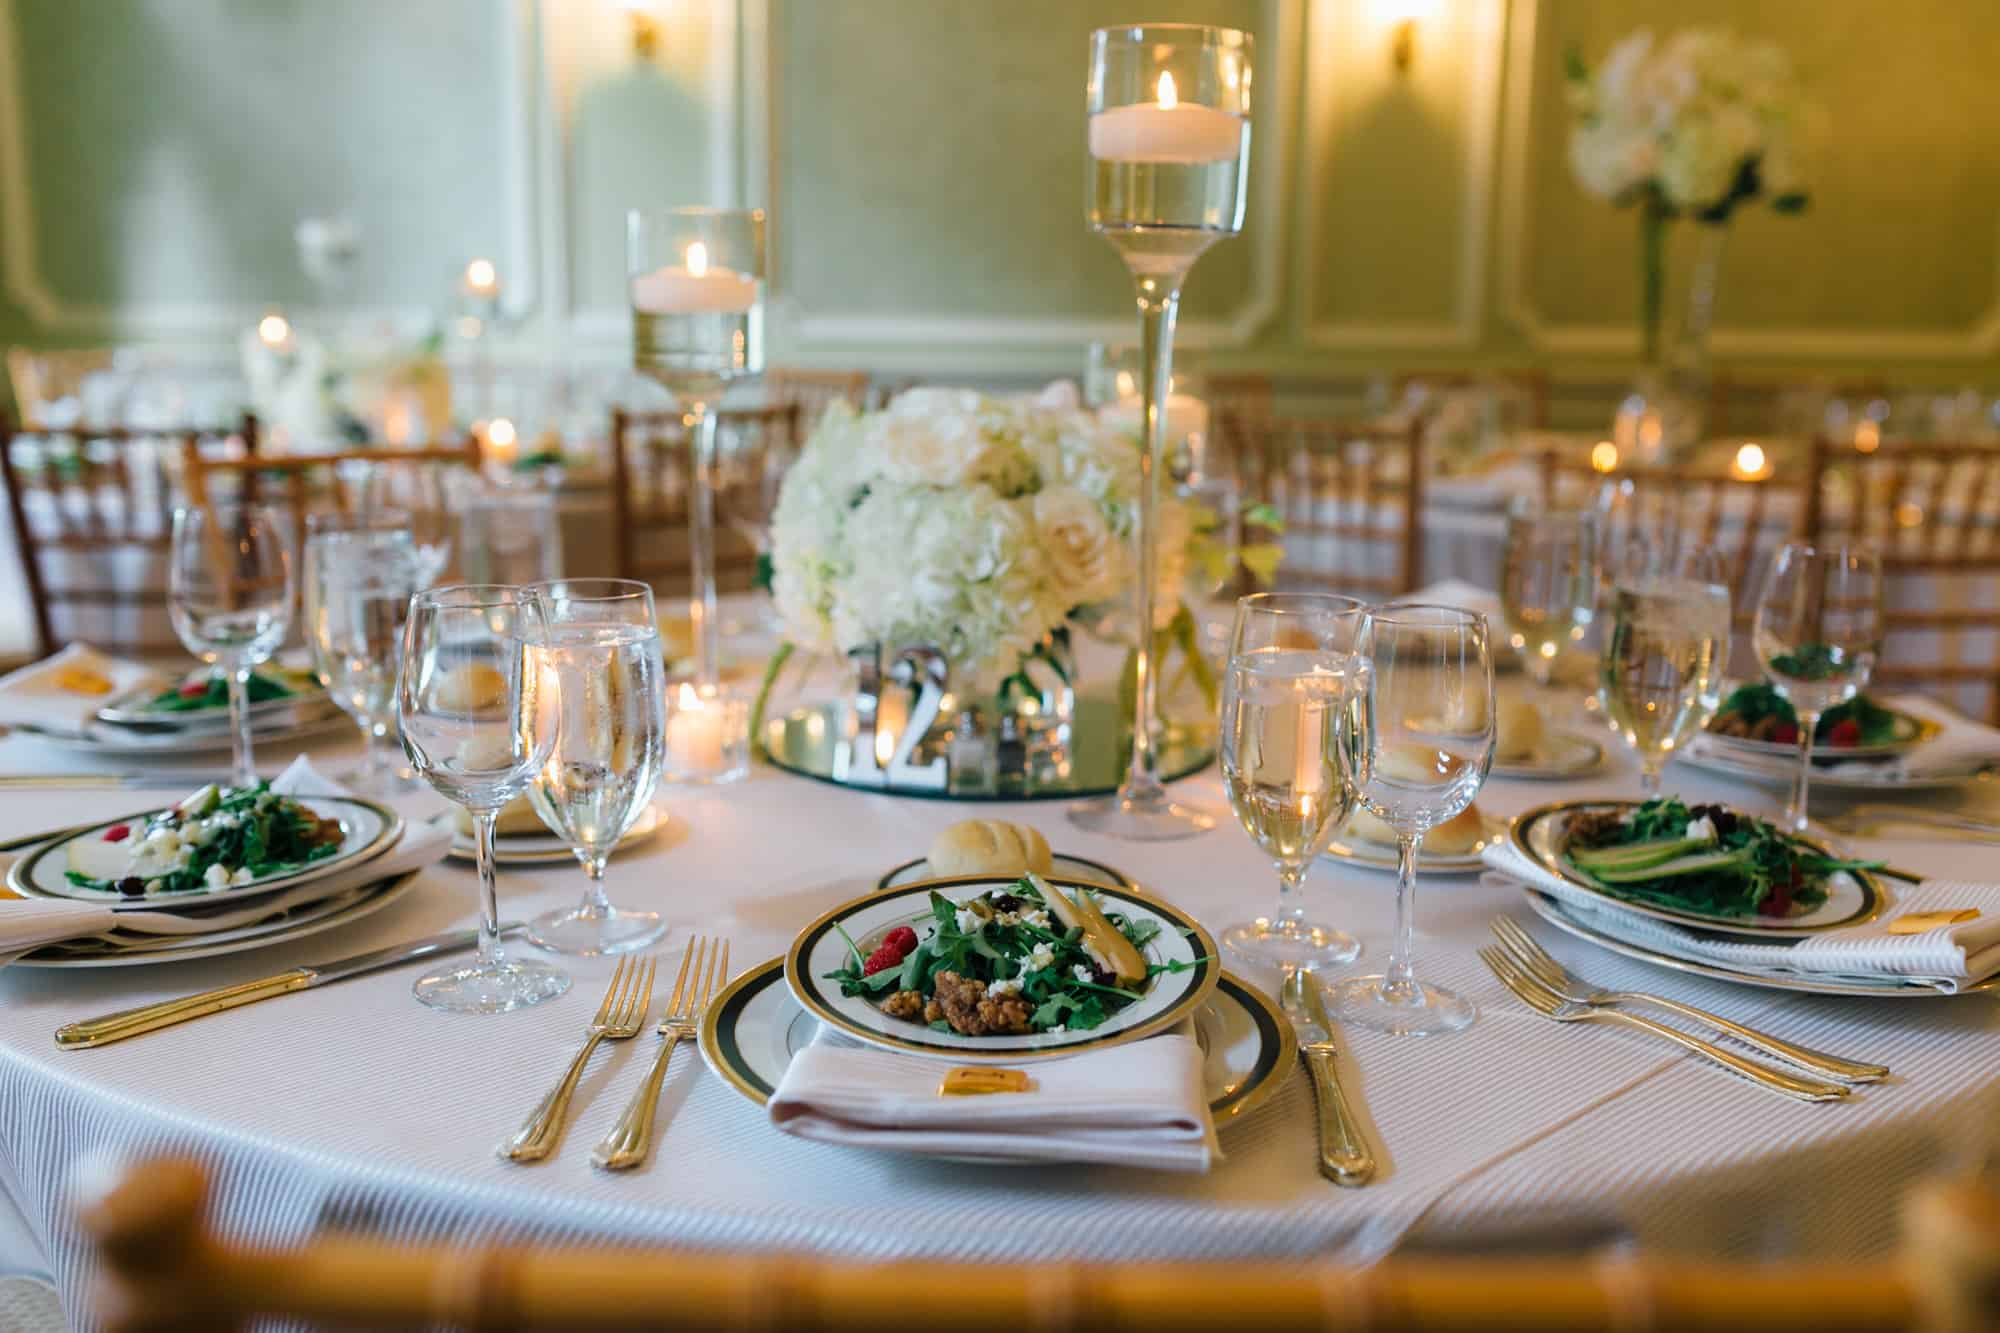 Detail image of wedding reception table